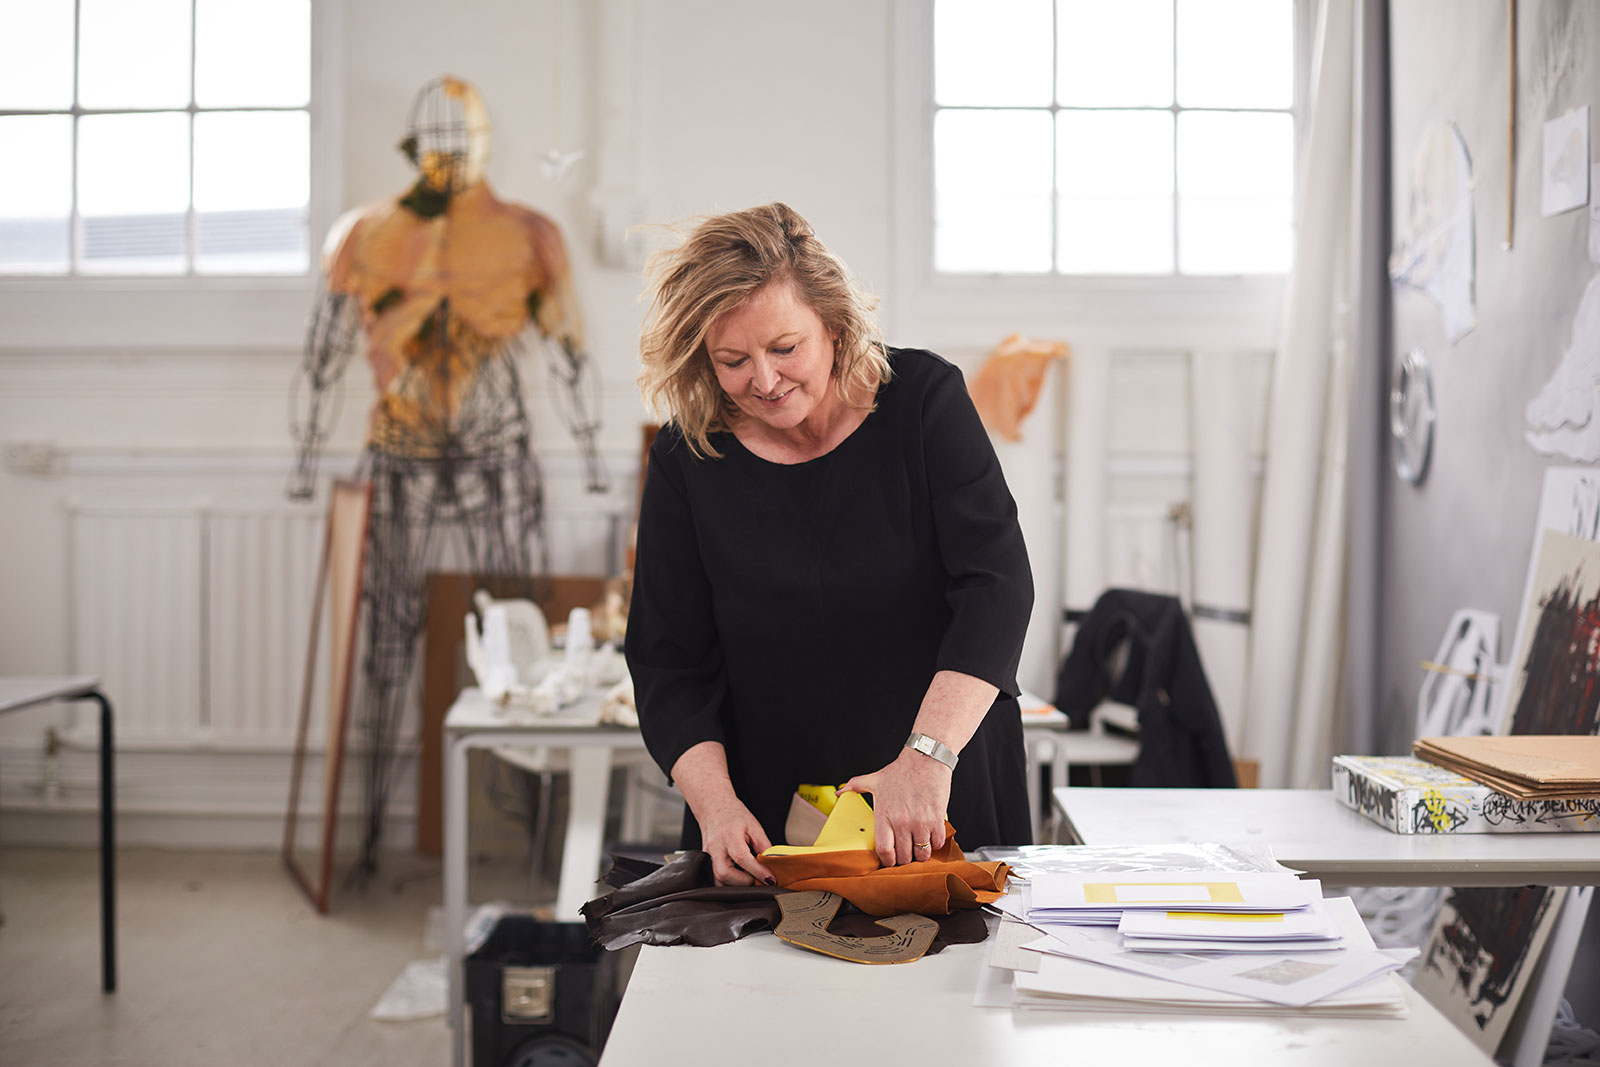 Marie Brennan works on her shoemaking business in the NUA MA Fine Art studio in front of art